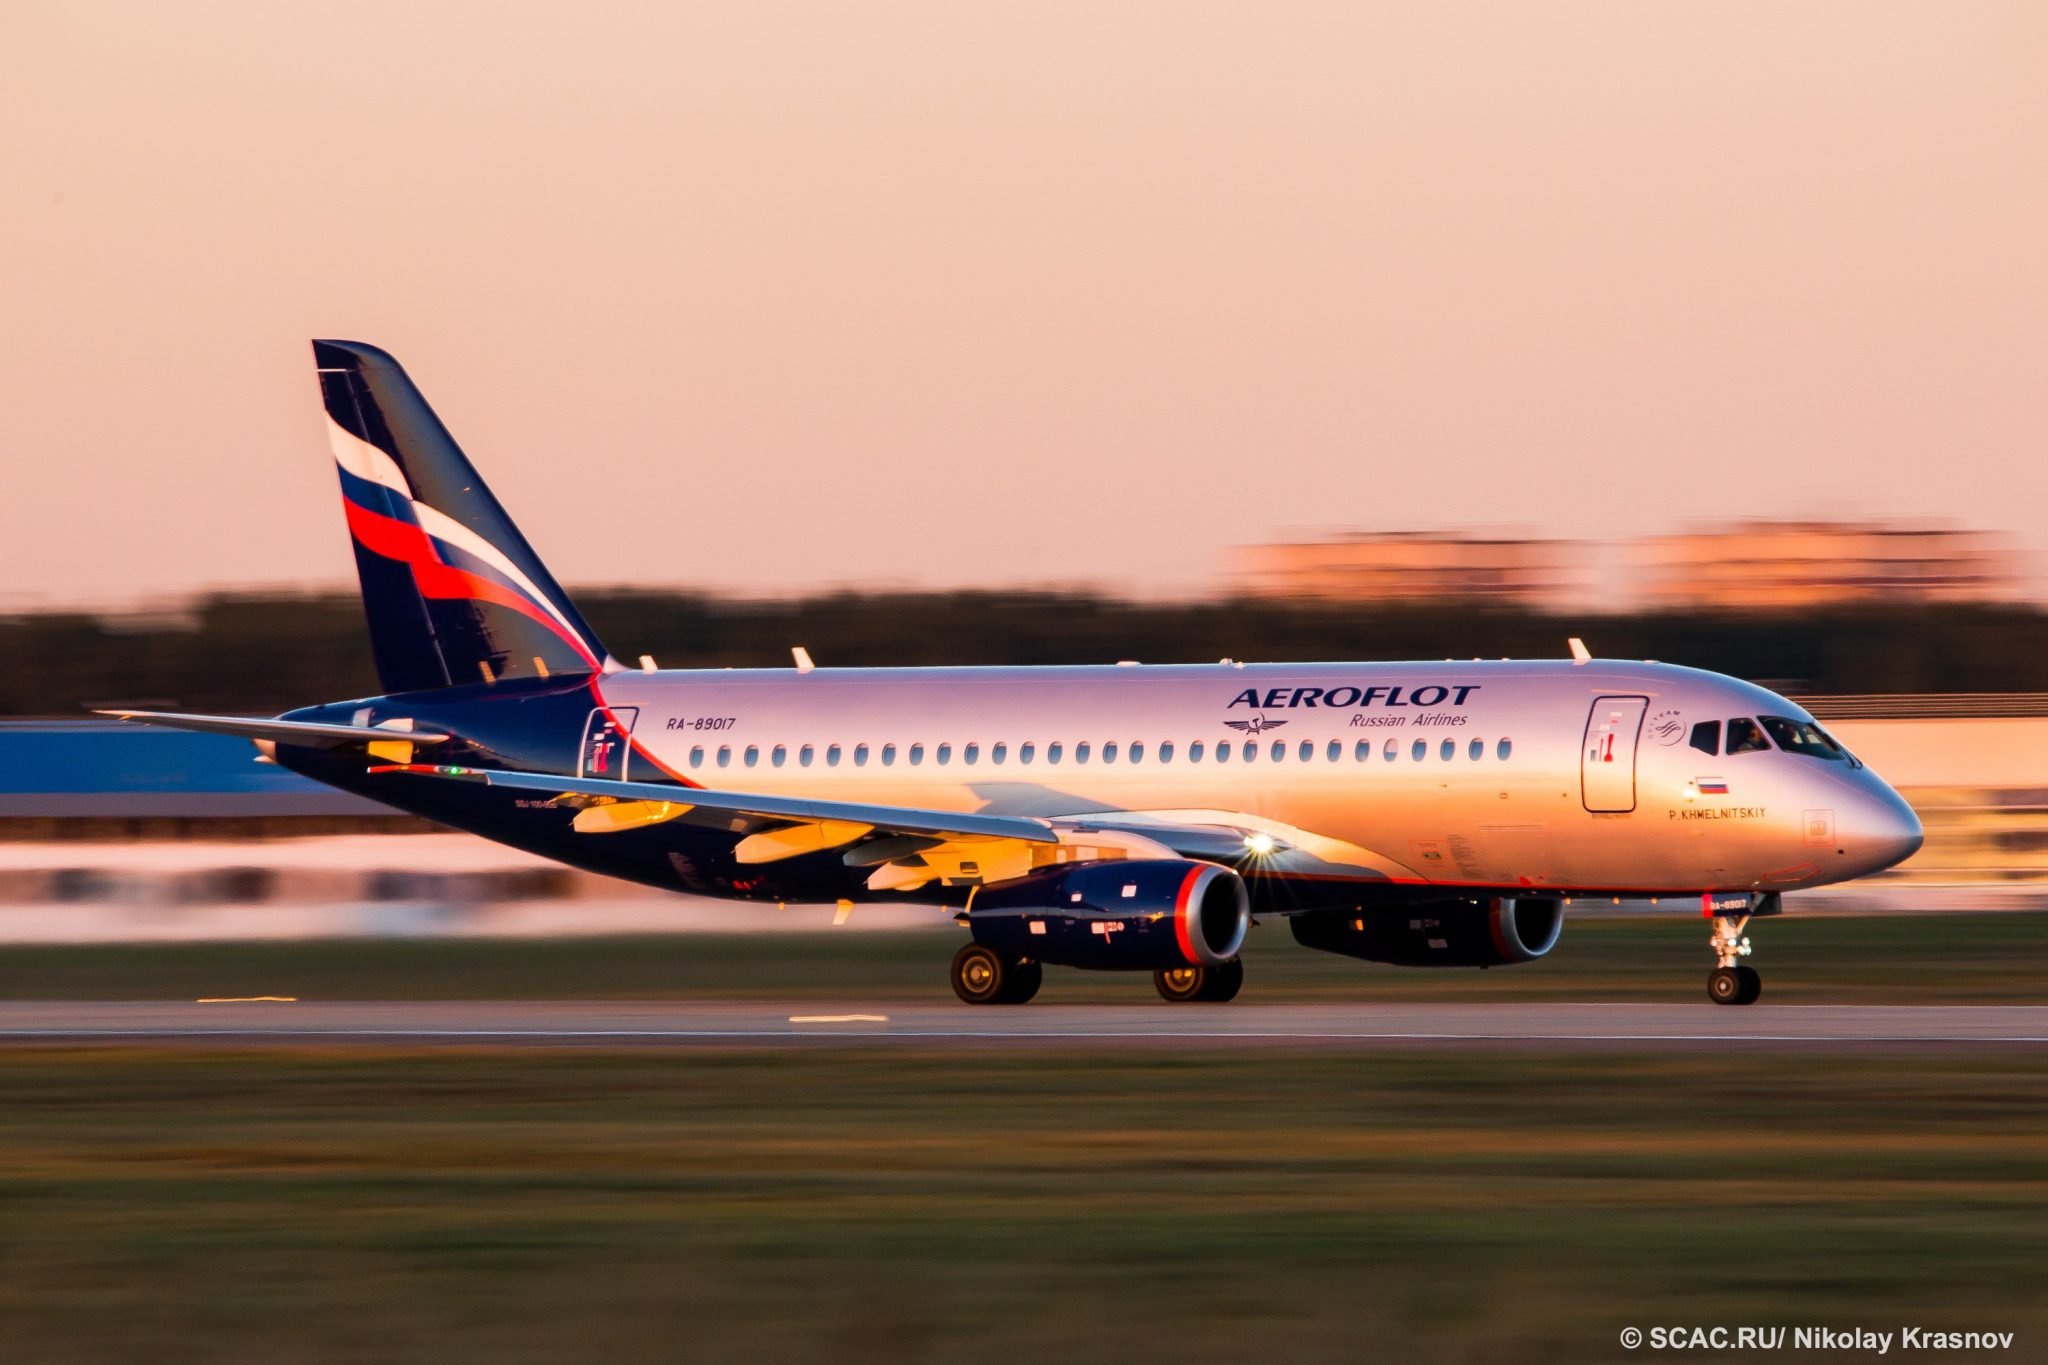 Another Aeroflot Sukhoi Superjet 100-95 is Involved in a Serious Incident... Time to Ground it?